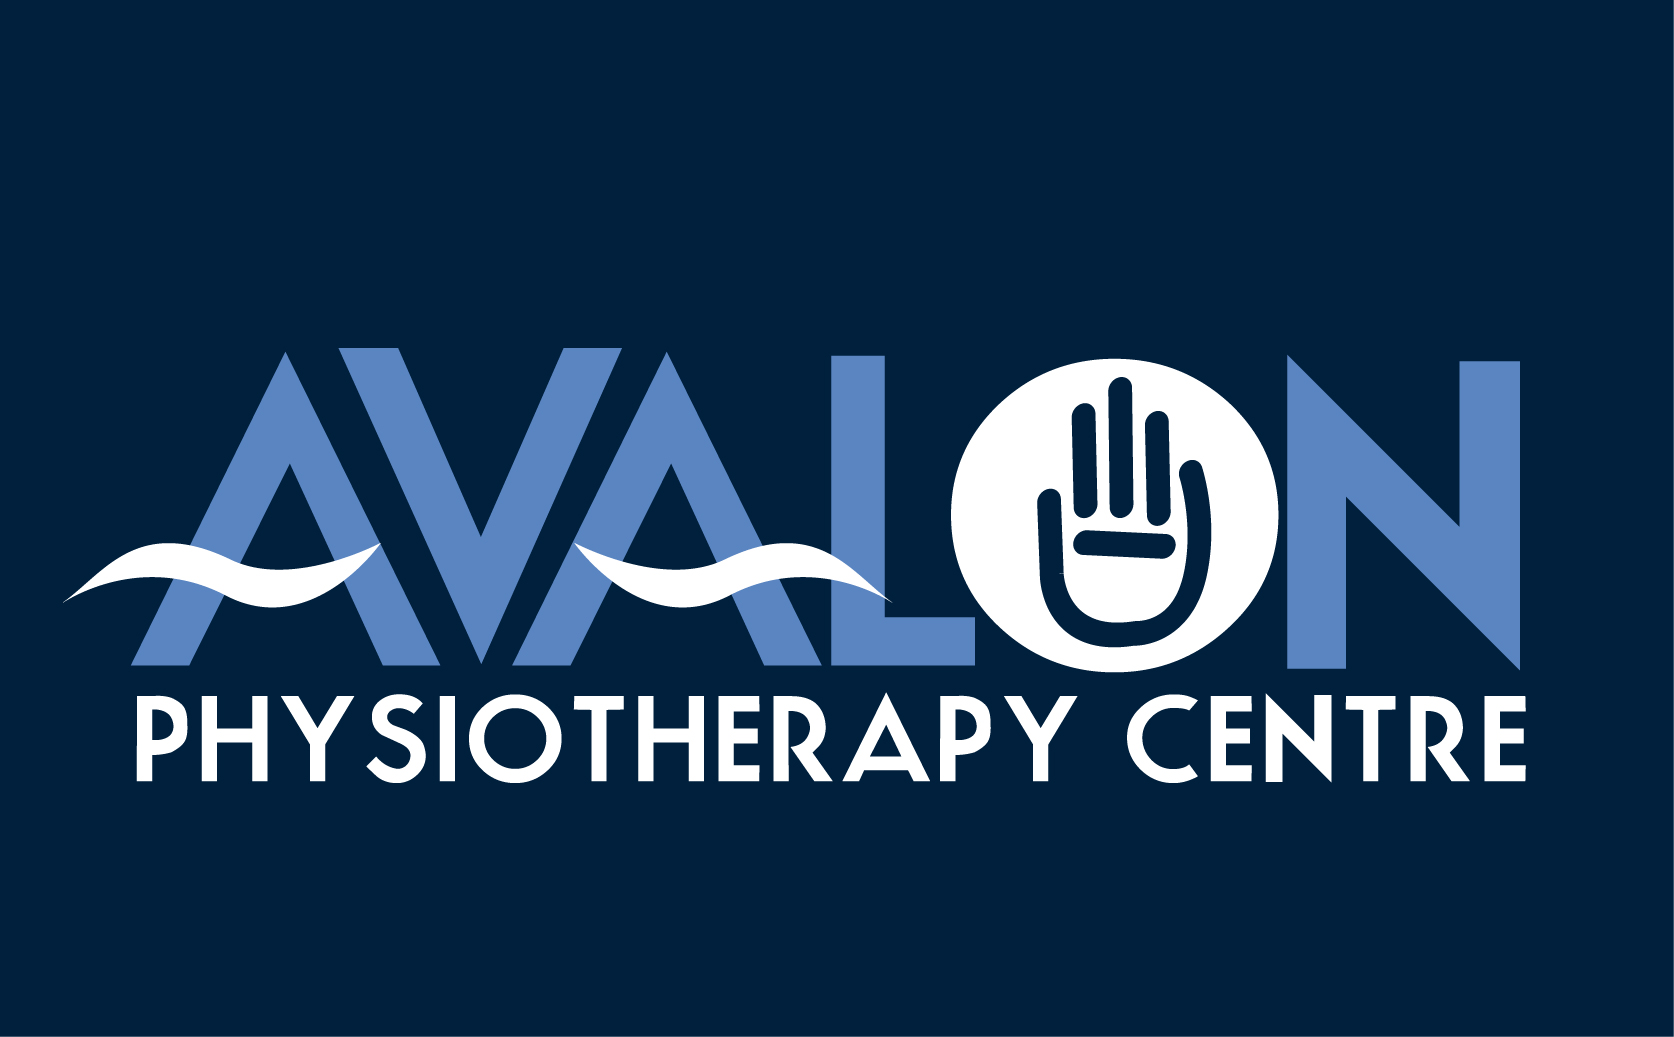 Avalon Physiotherapy Centre